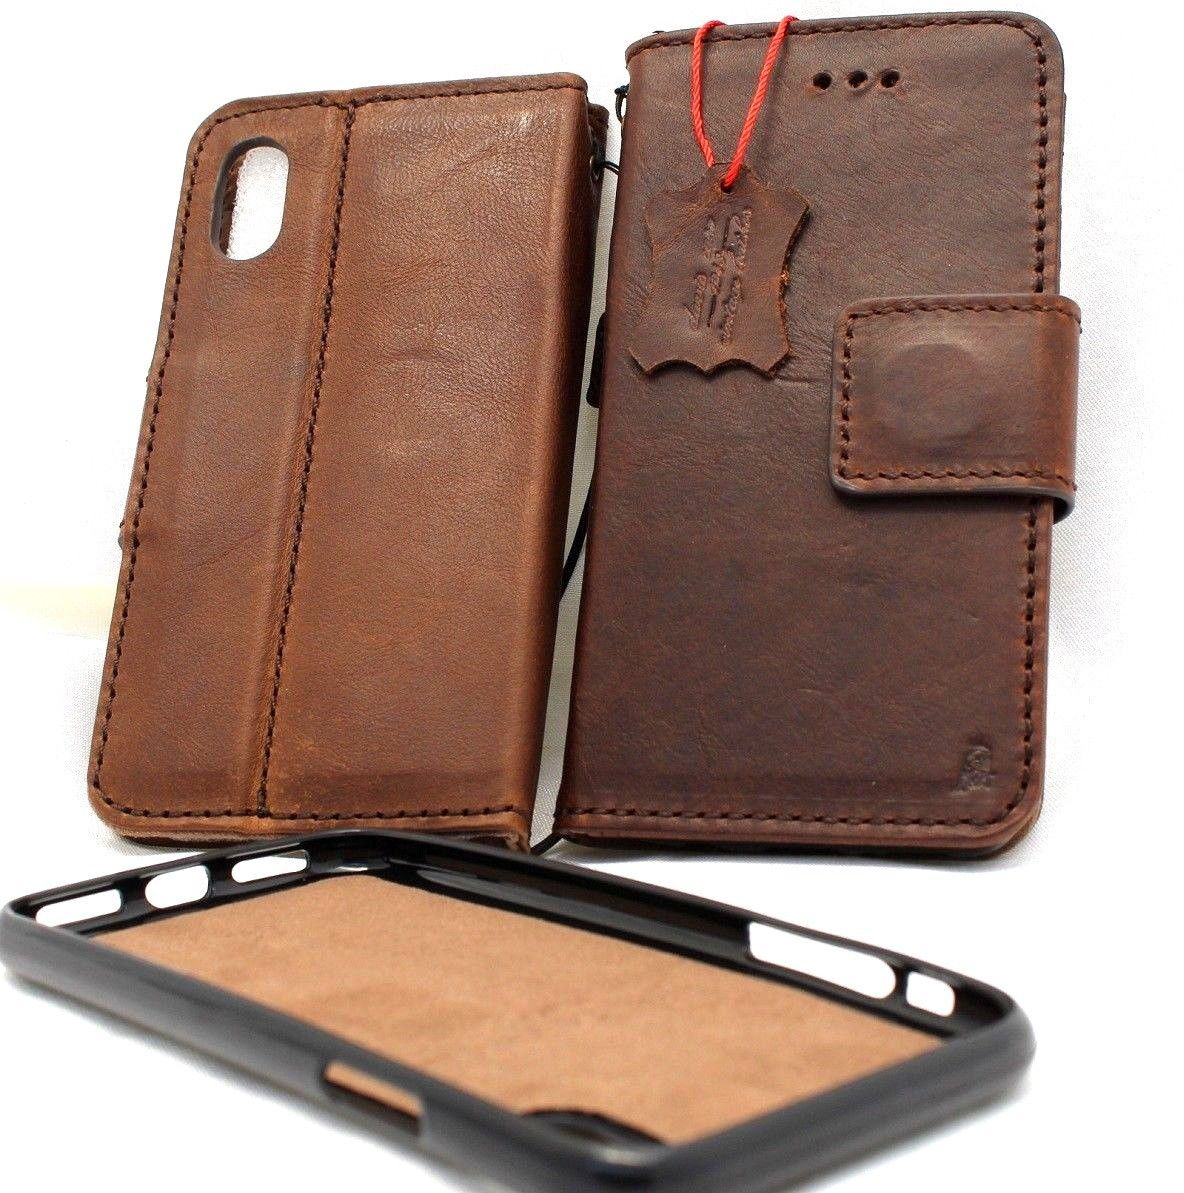 separation shoes d4a6a f0eec Genuine leather Case for iPhone x vintage cover credit cards Removable  detachable magnetic slots luxury dark Daviscase 10 Jafo